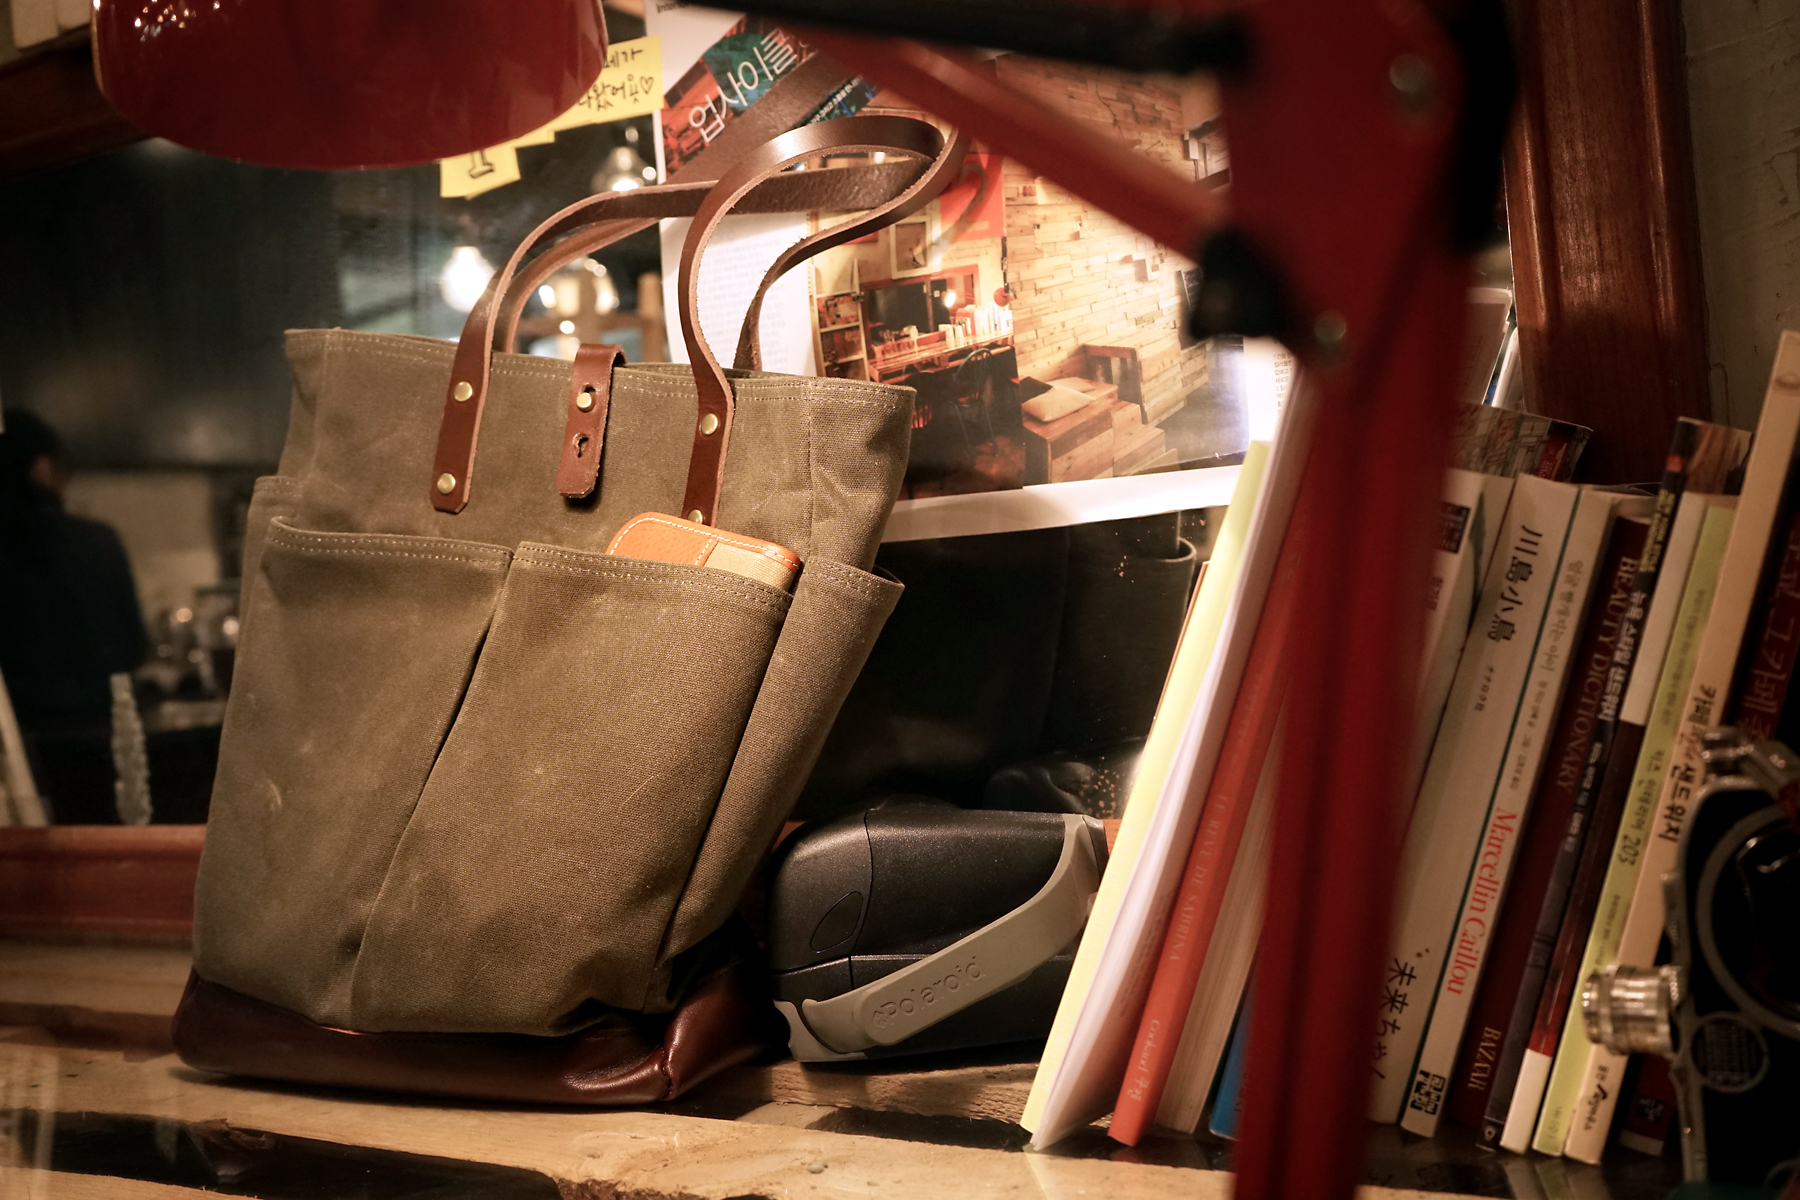 215 왁스캔버스 데일리토트백Waxed Canvas Daily Tote BagWaxed Canvas/Genuine Leather